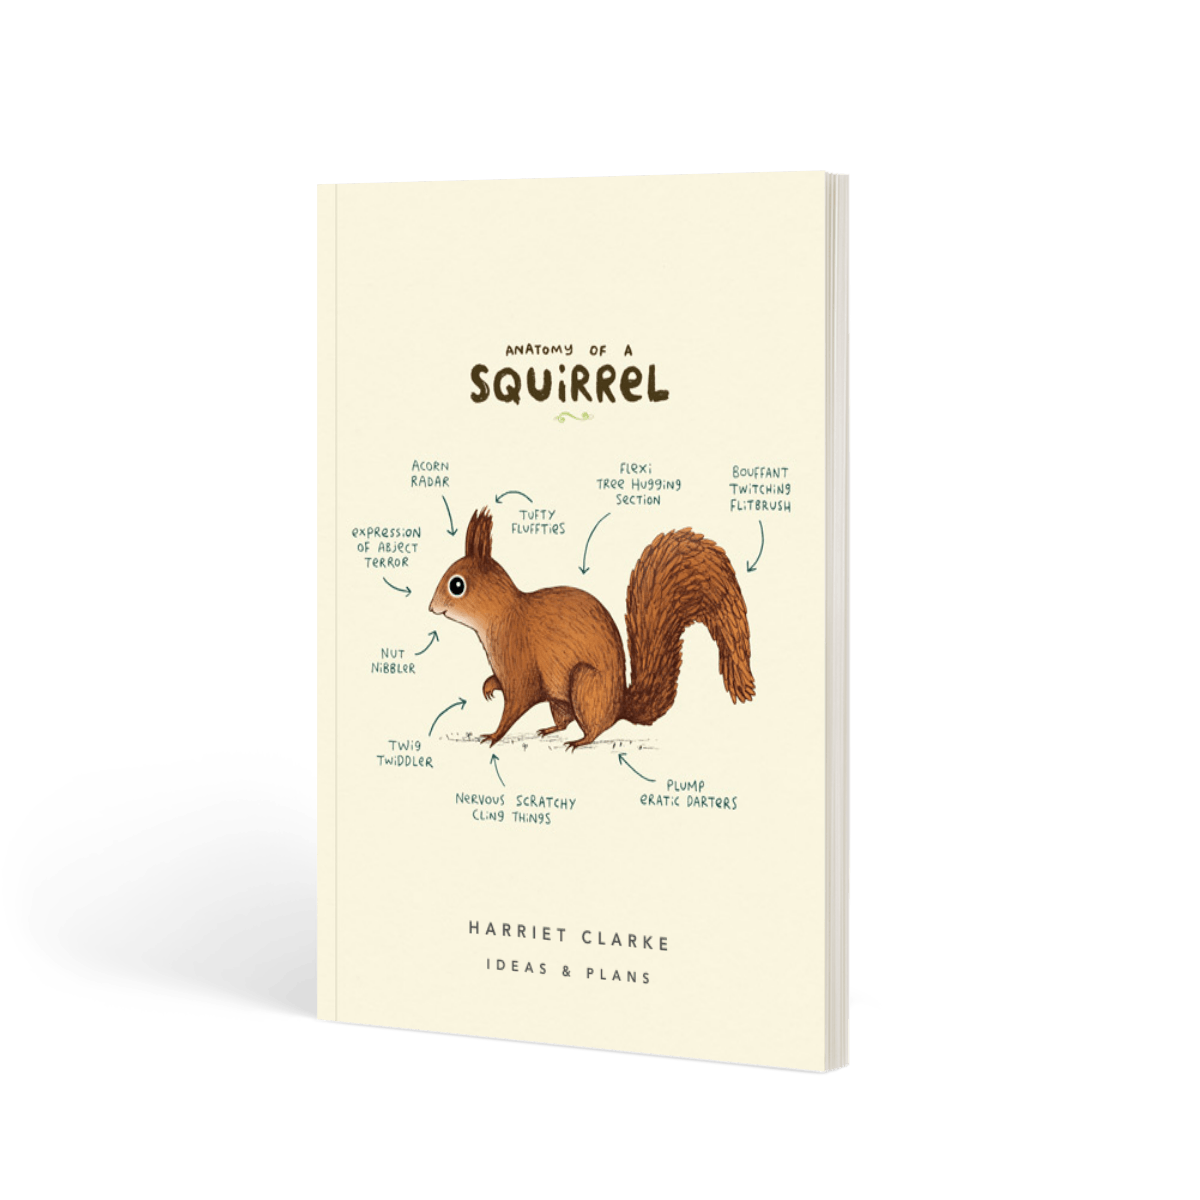 Https%3a%2f%2fwww.papier.com%2fproduct image%2f14637%2f6%2fanatomy of a squirrel 3899 front 1480679157.png?ixlib=rb 1.1